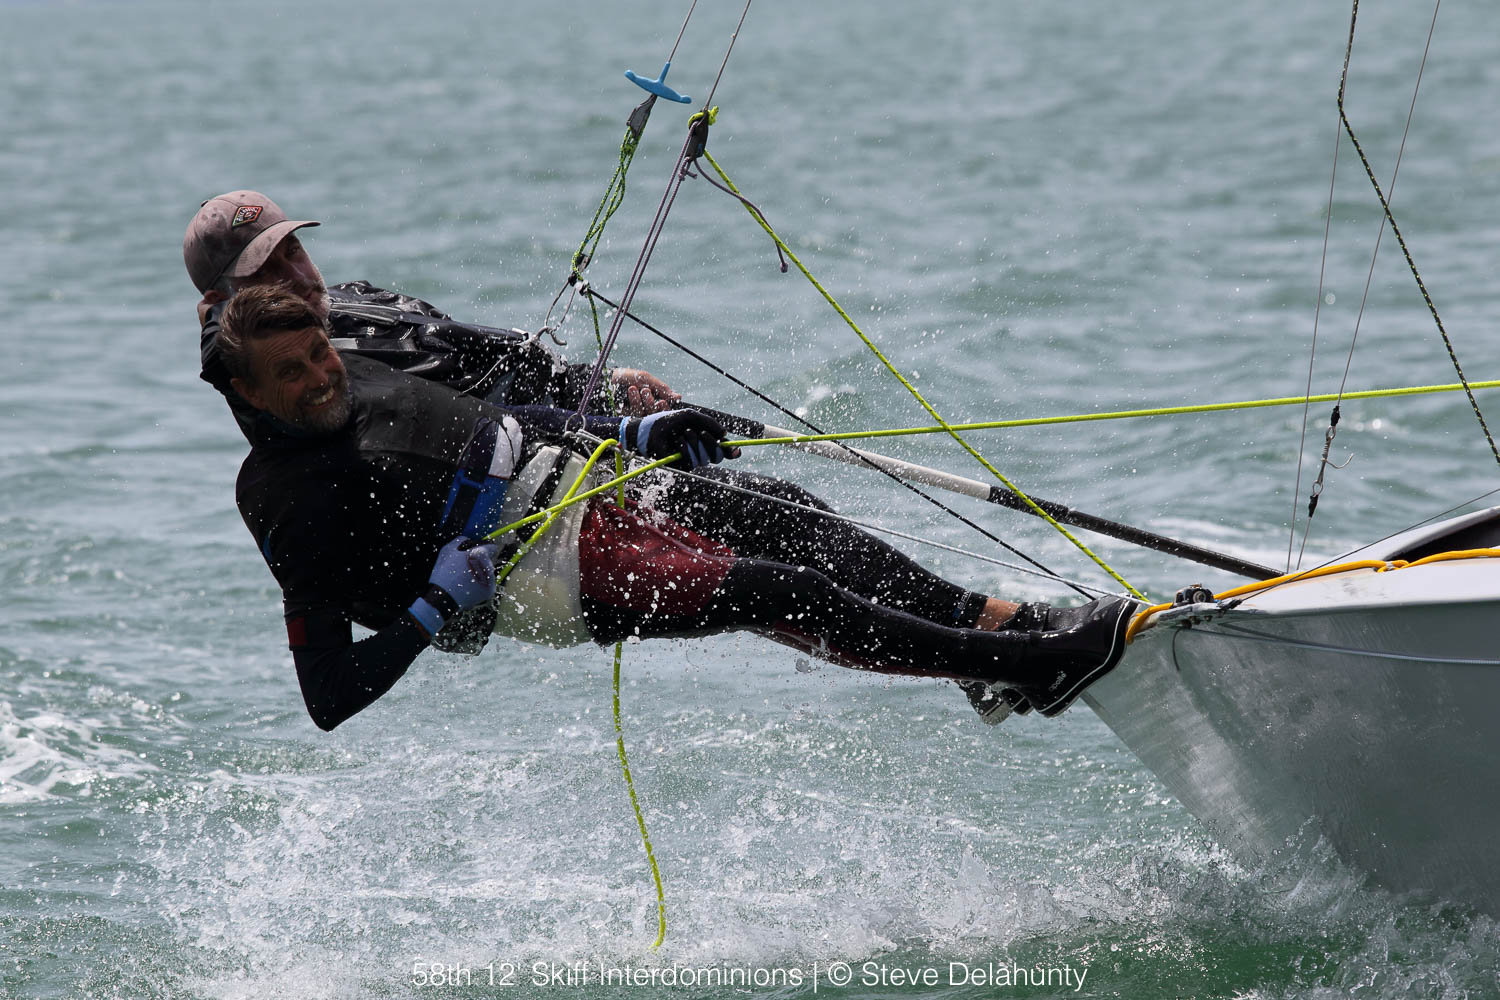 58th 12′ Skiff Interdominions: Champagne sailing, ripped kites